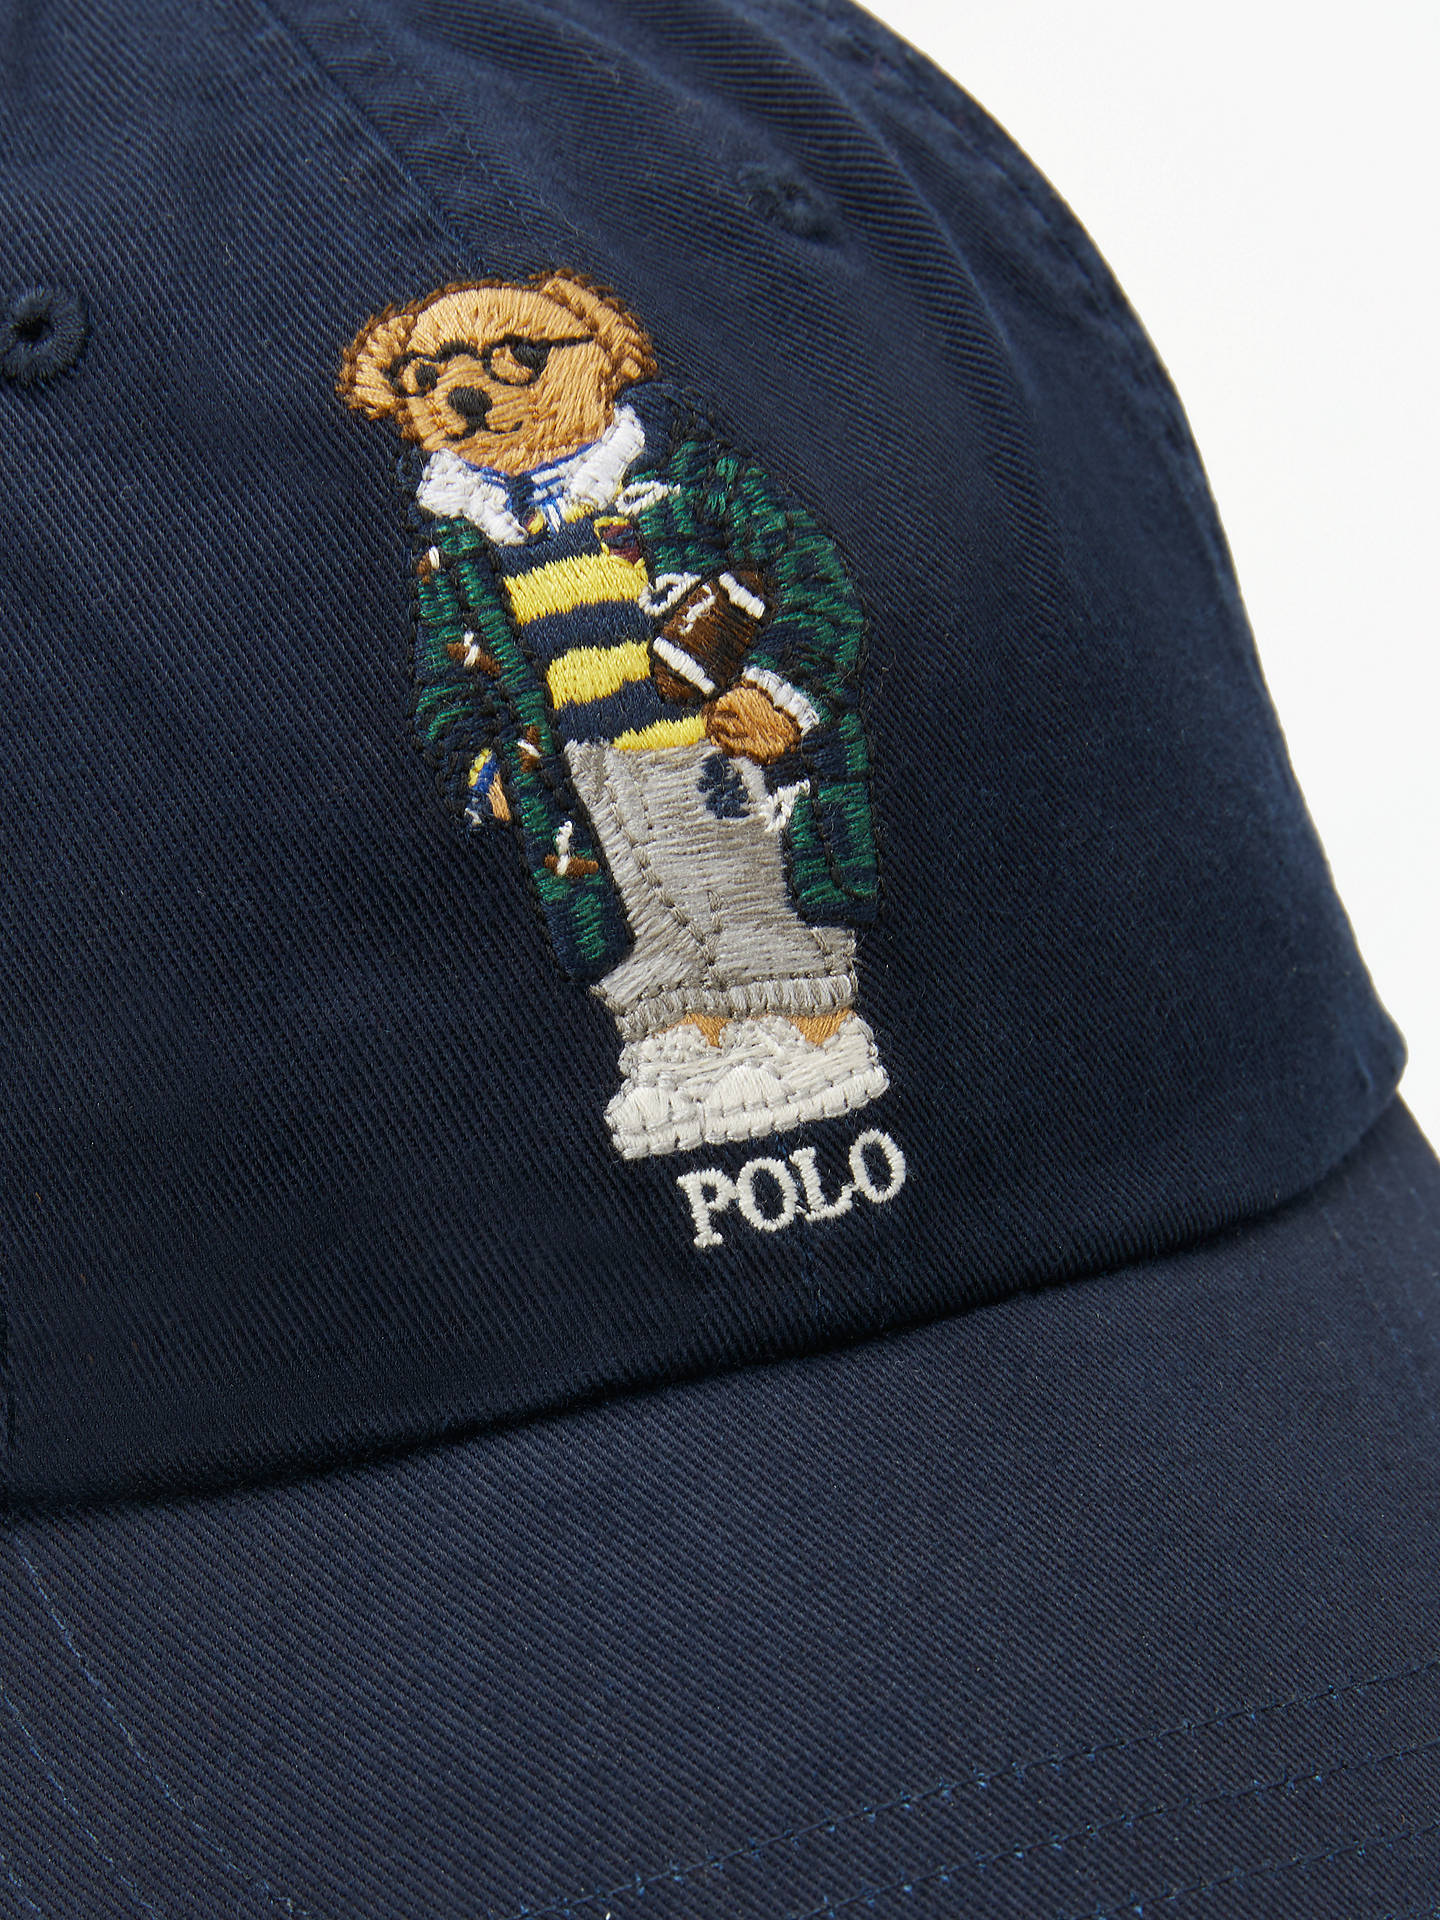 Buy Polo Ralph Lauren Bear Baseball Cap, One Size, Navy Online at johnlewis.com